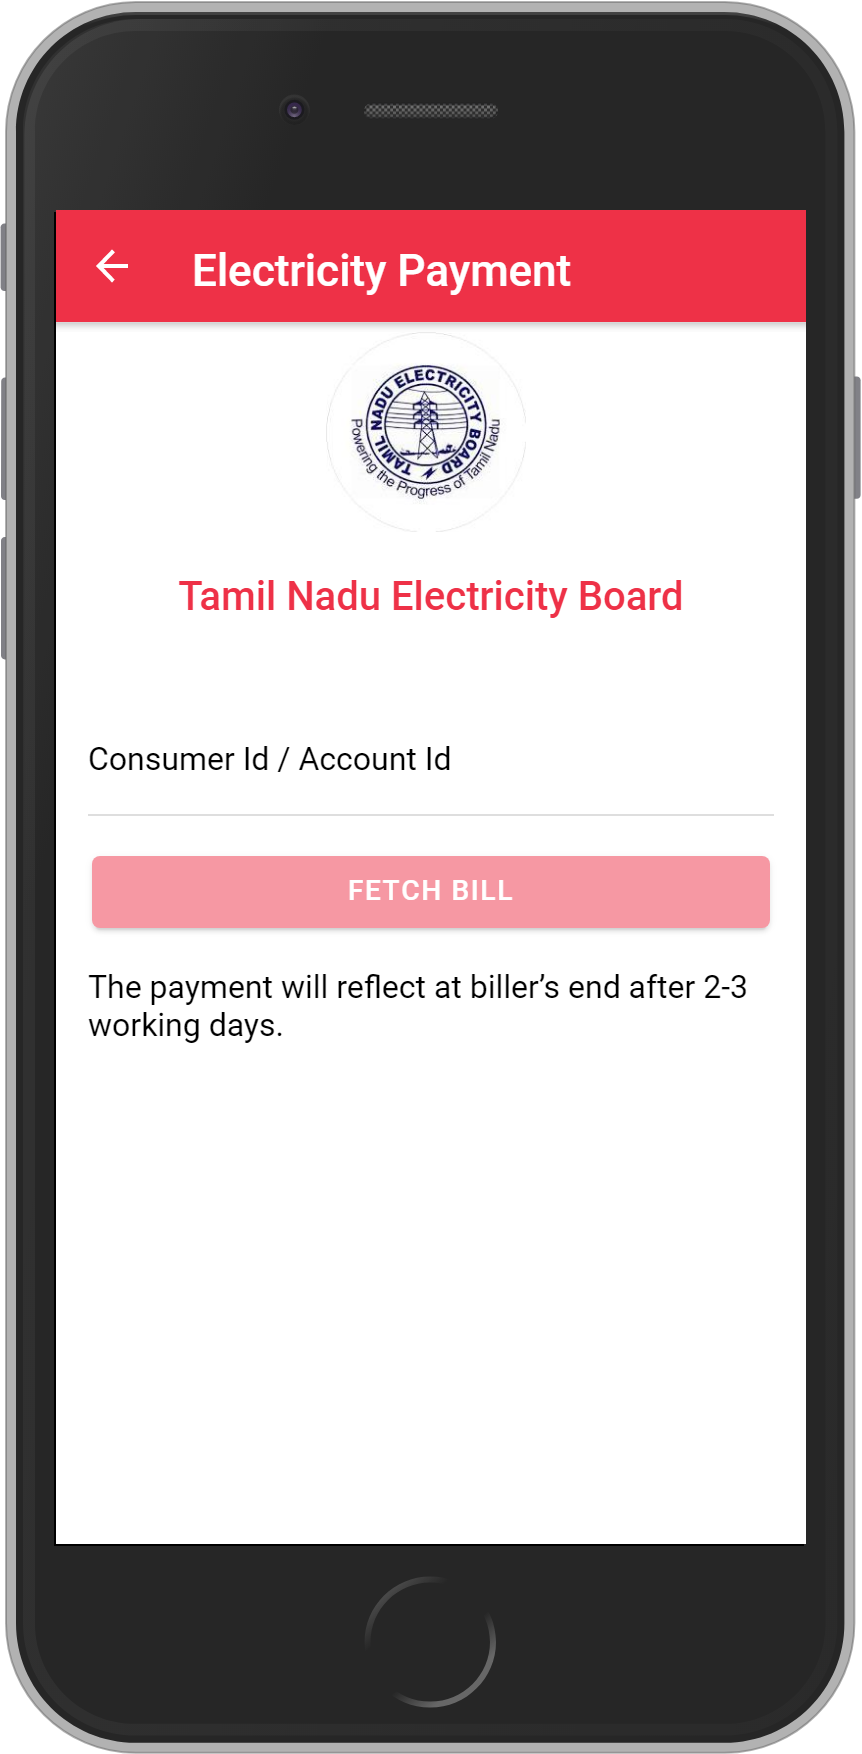 Get UNLIMITED <b>0.1%</b> CASHBACK on Tamil Nadu Electricity Board (TNEB) Bill Payment.